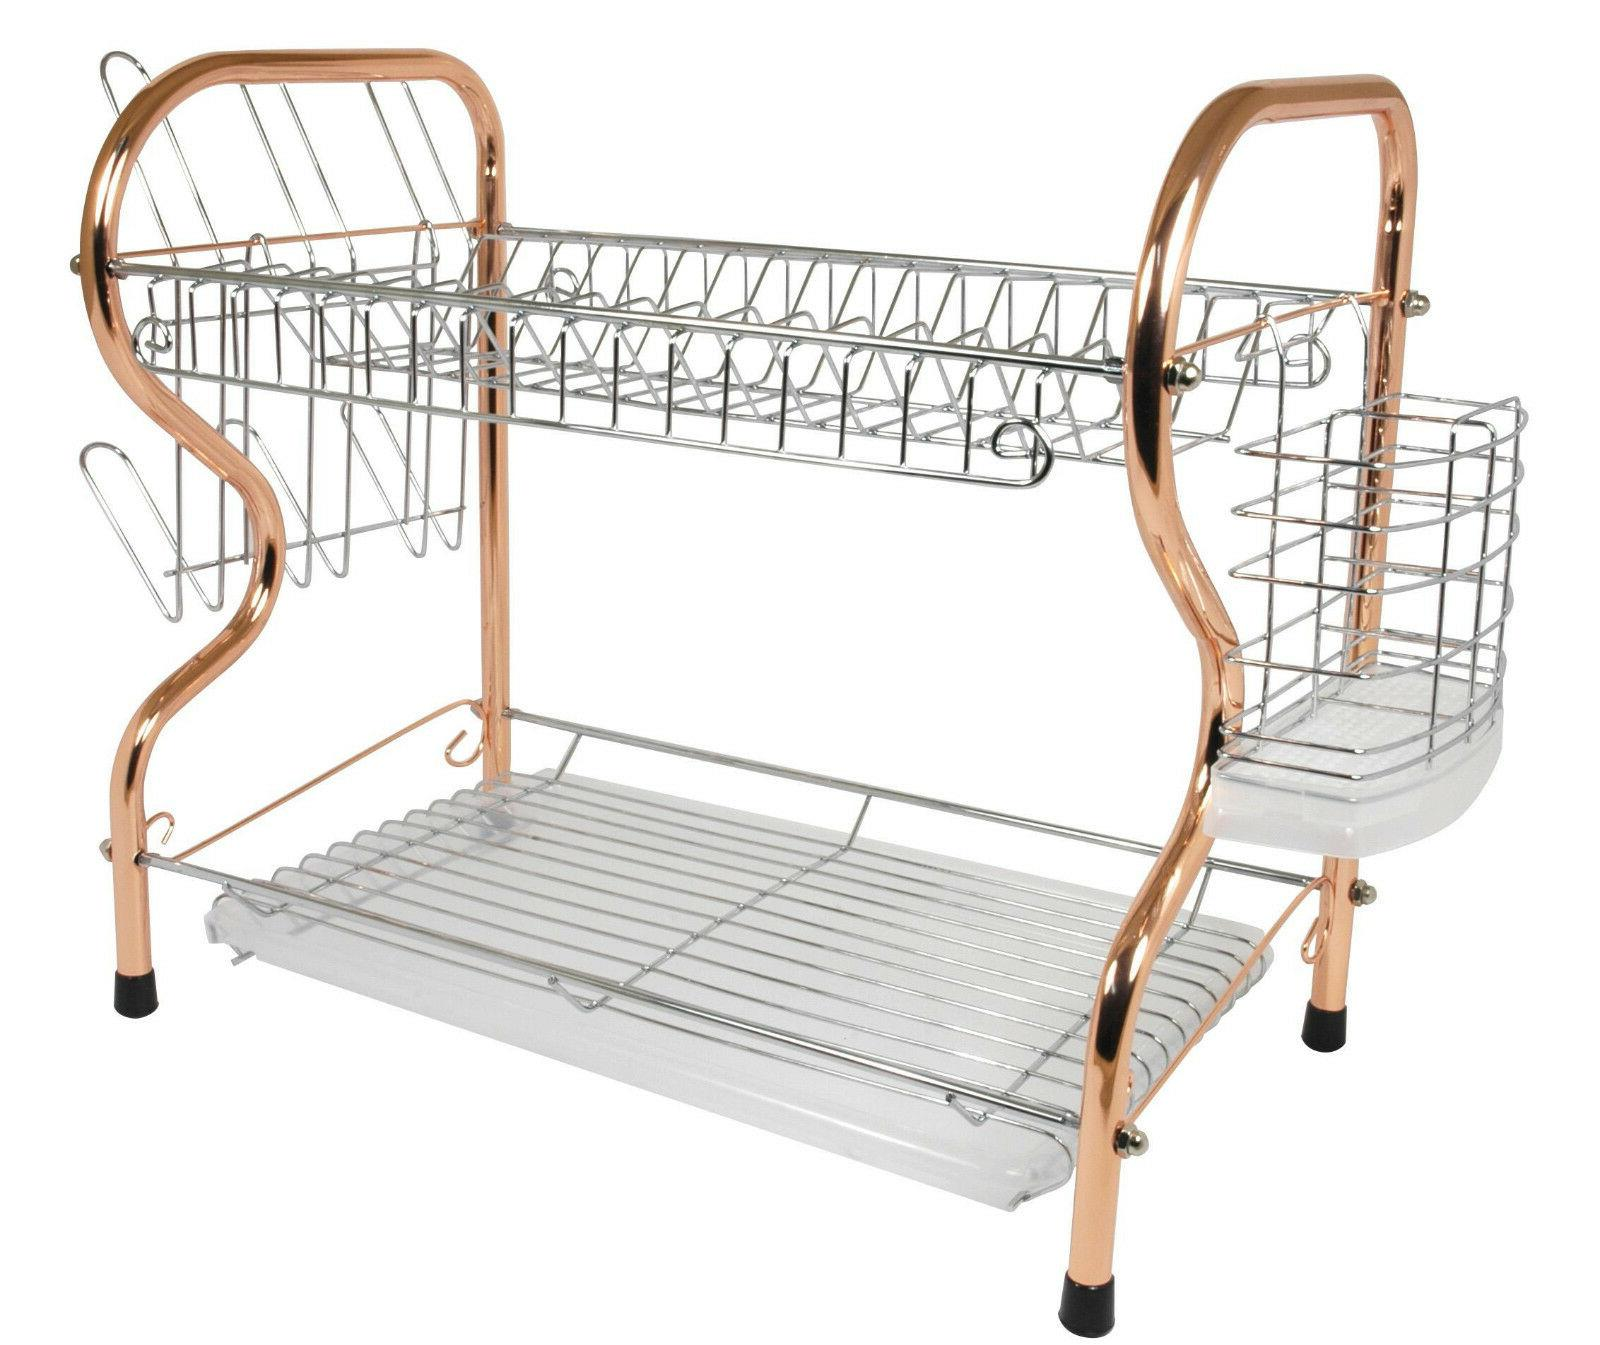 Better 16 Chrome Dish Rack with Utensil Holder, and Tray